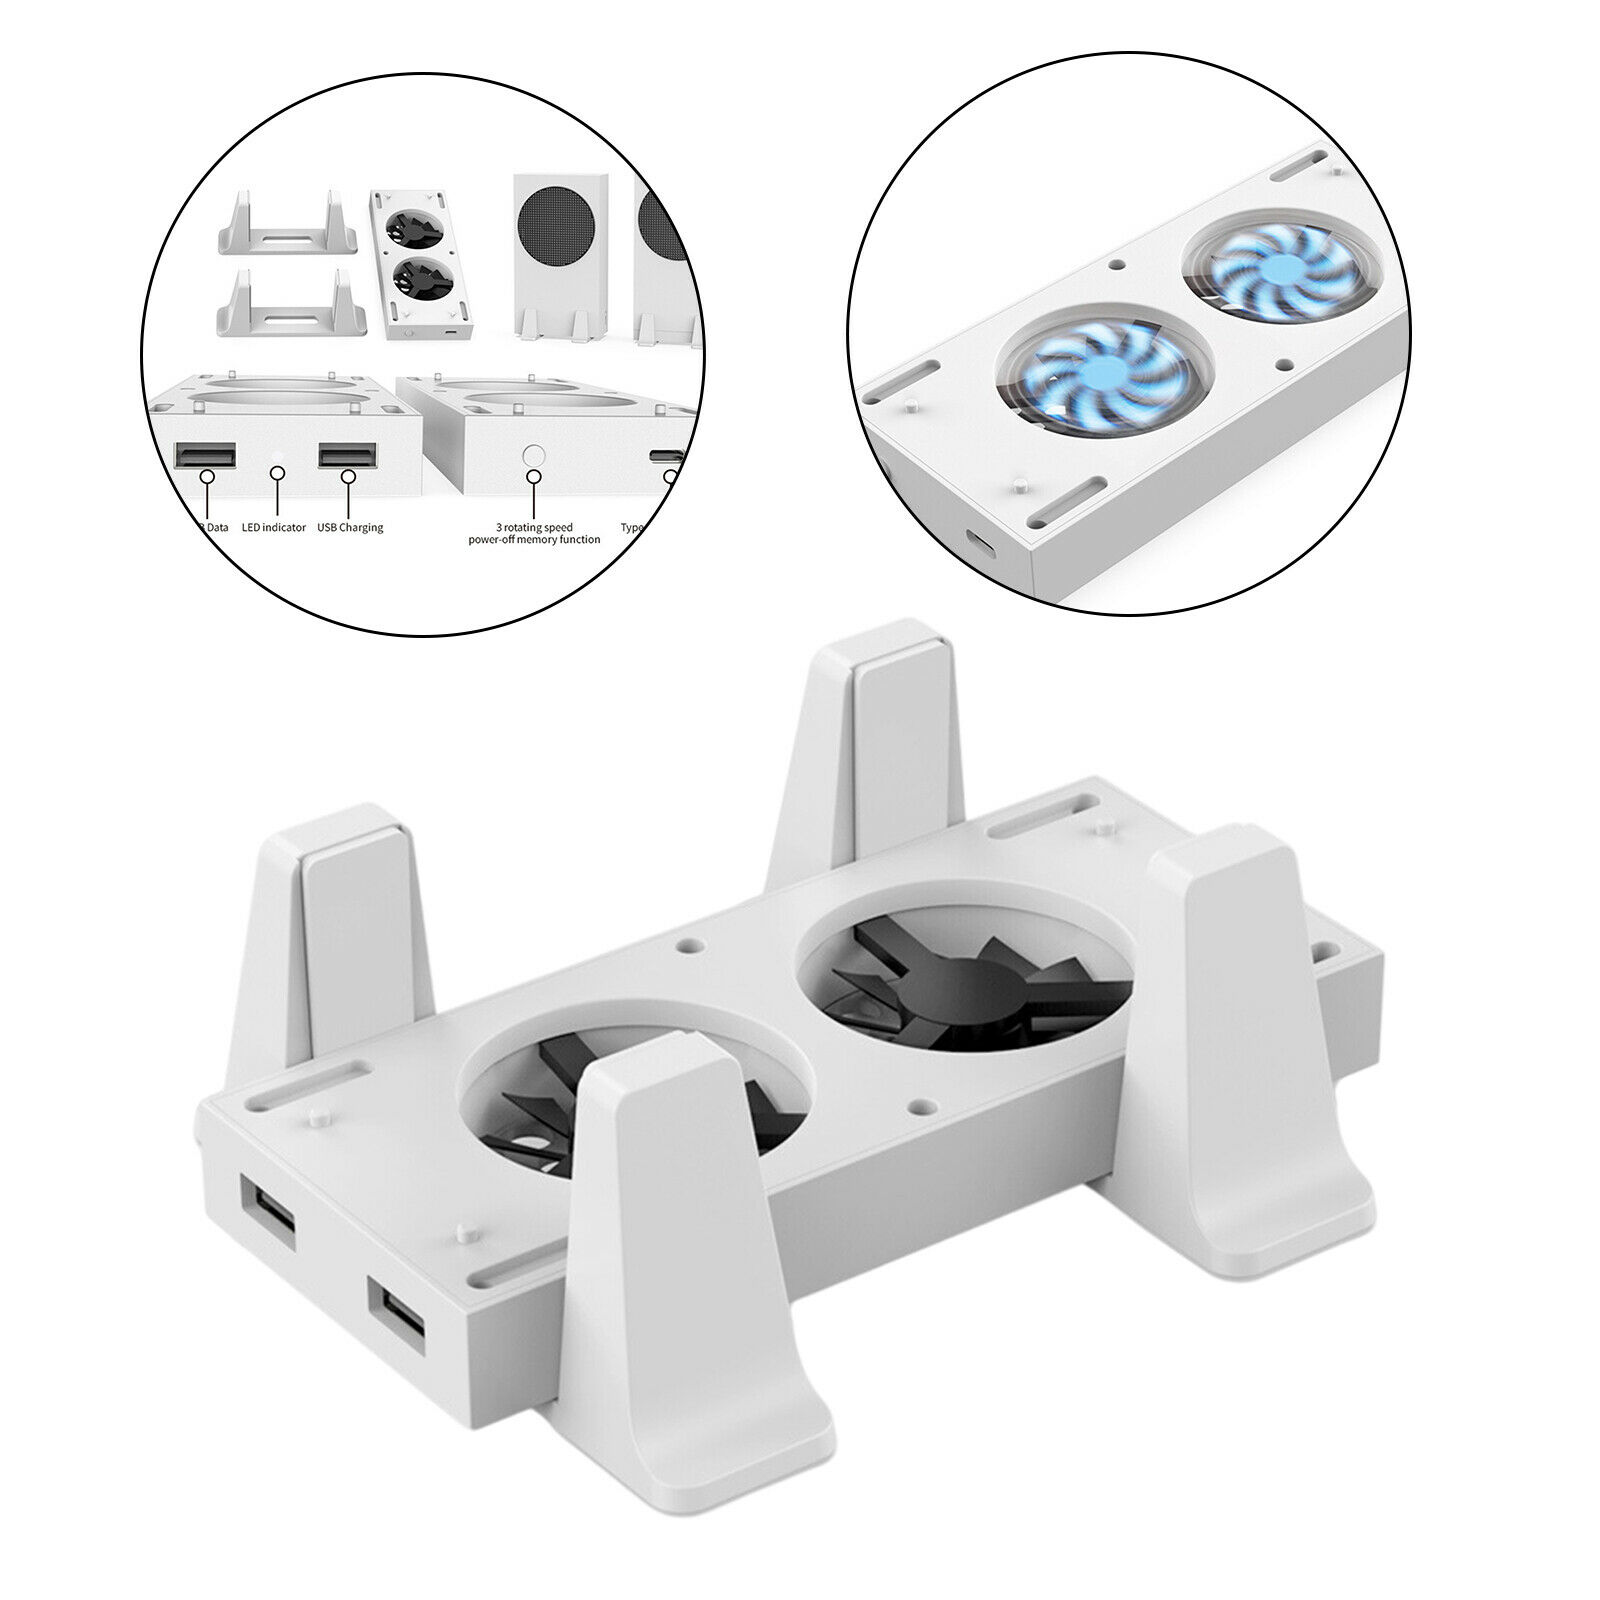 Vertical Stand for Series S Console w/ 2 Cooling Fan Adjustable Cooler